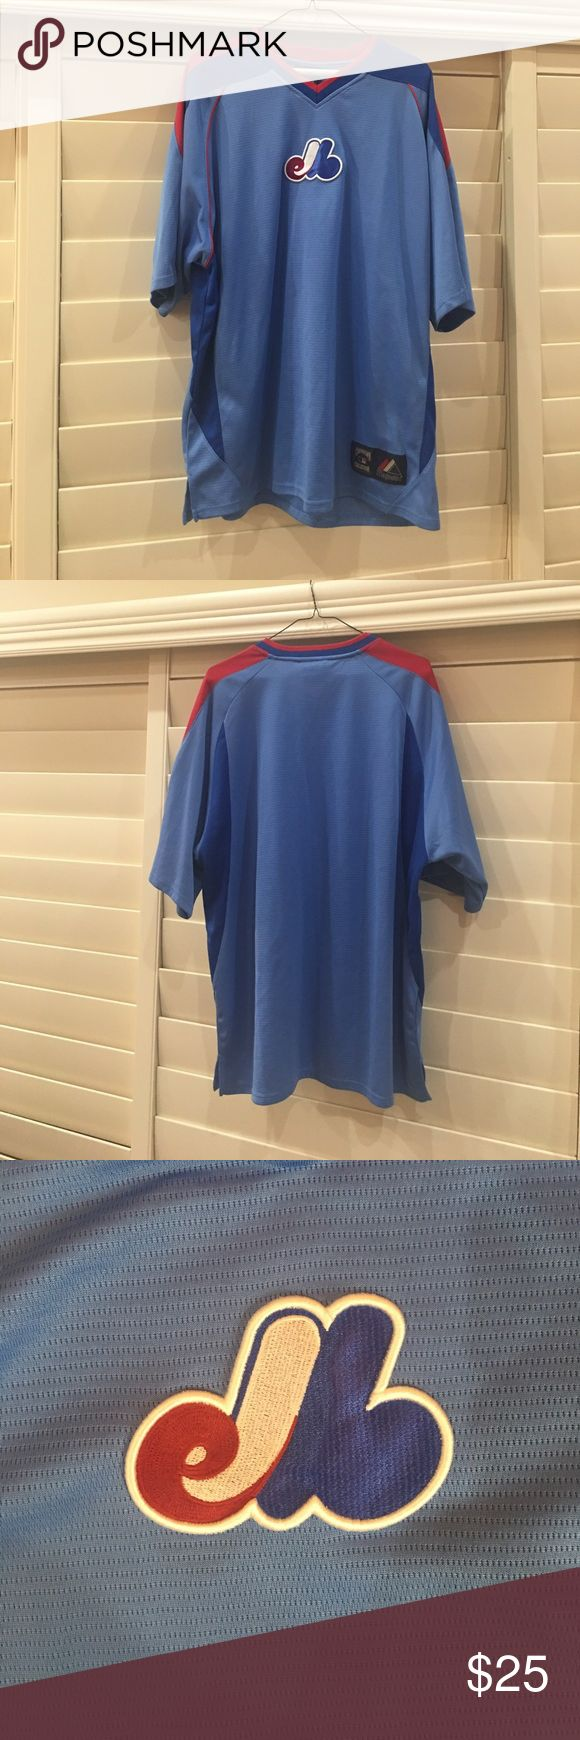 Men's Majestic Montreal Expo Baseball Jersey Sz L Men's Majestic Montreal Expo Baseball Jersey Short Sleeve - Size Large - From the Cooperstown Collection!  Jersey only worn several times!  In perfect condition no defects! Majestic Shirts Tees - Short Sleeve